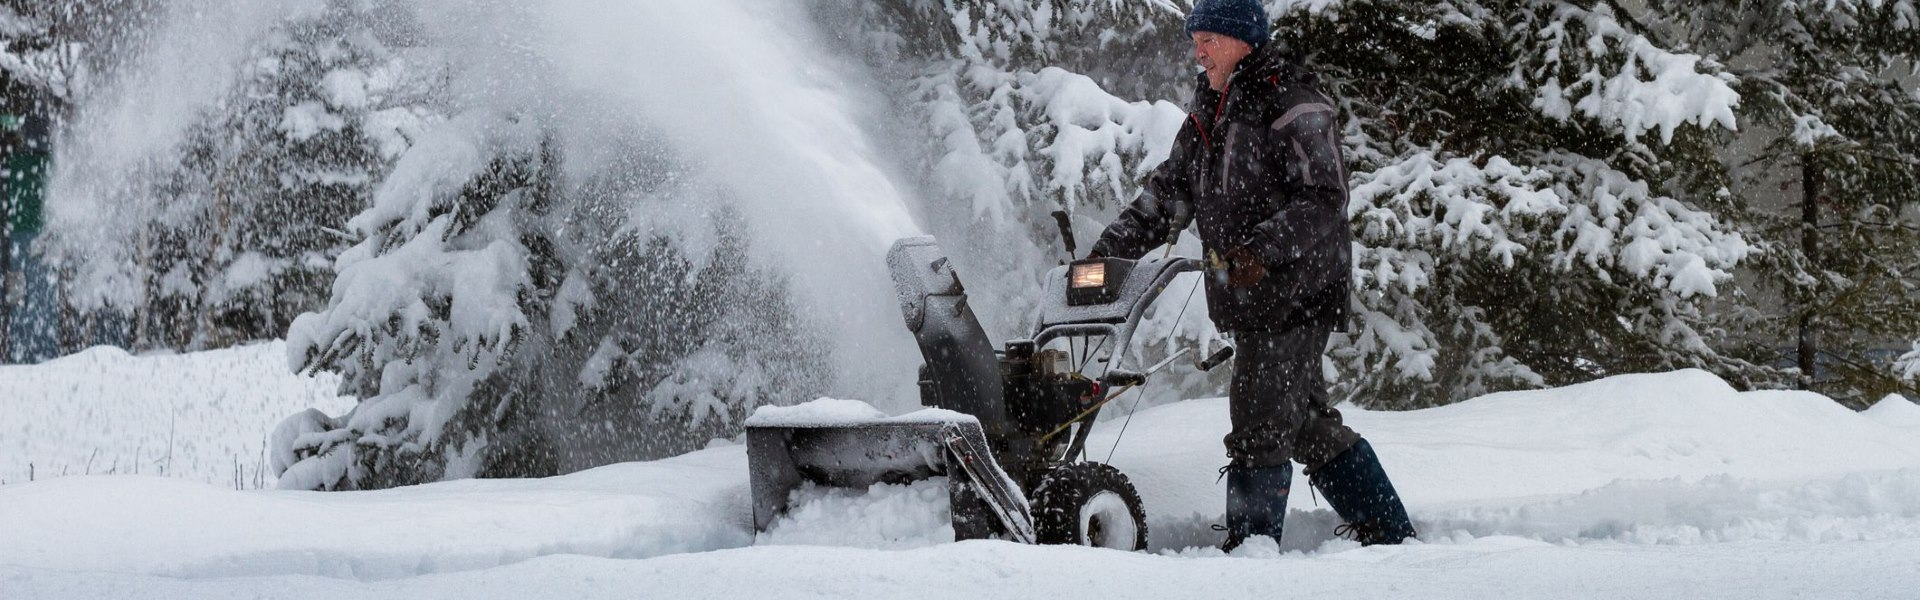 10 Best Snowblowers for Wet Snow – Get Your Problems Out Of The Way